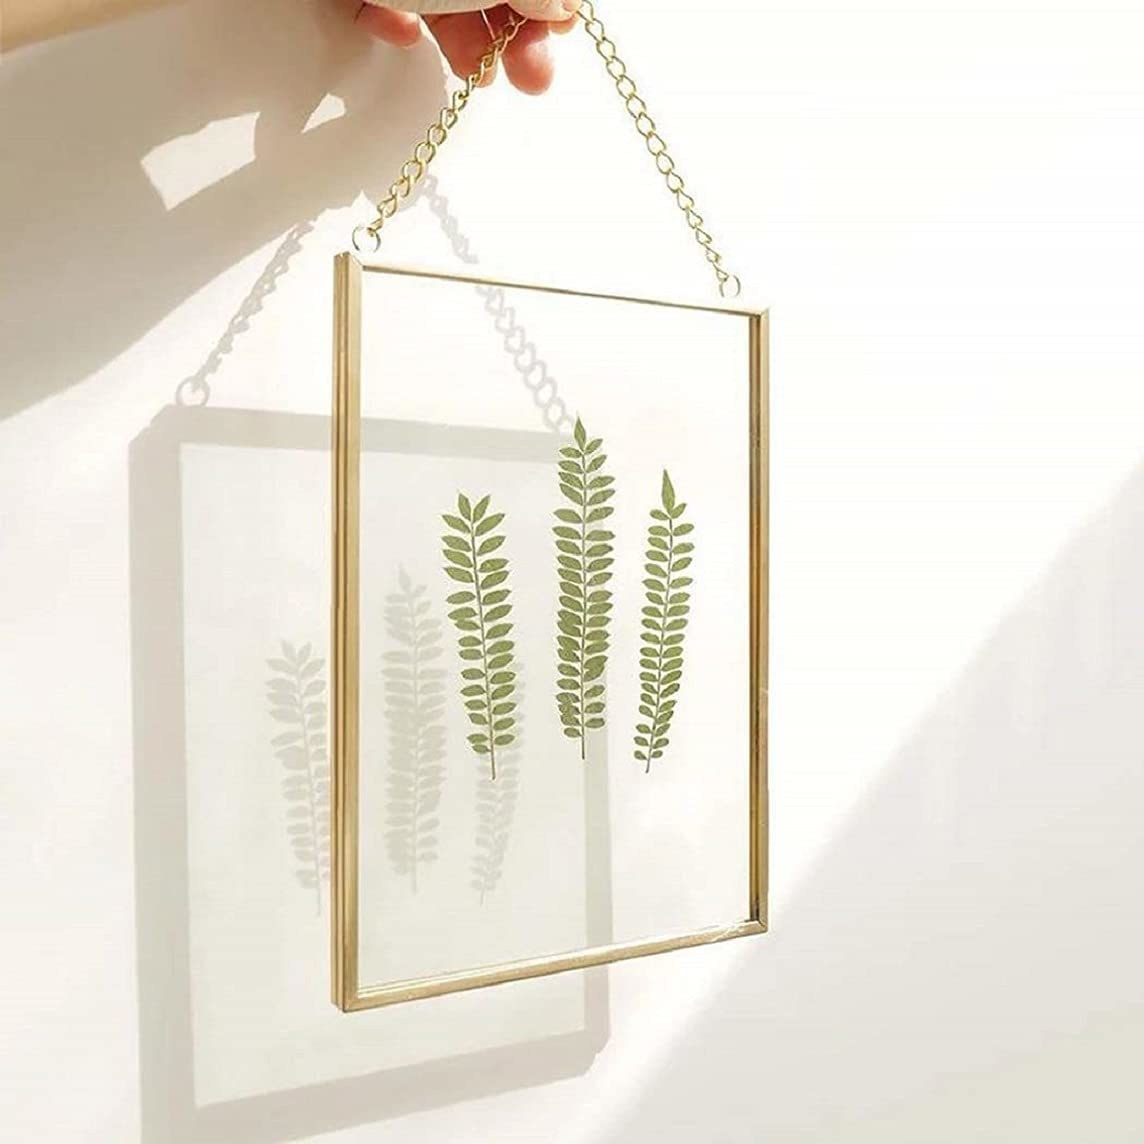 A transparent glass frame with metal borders painted in gold with 3 stems of leaves inside